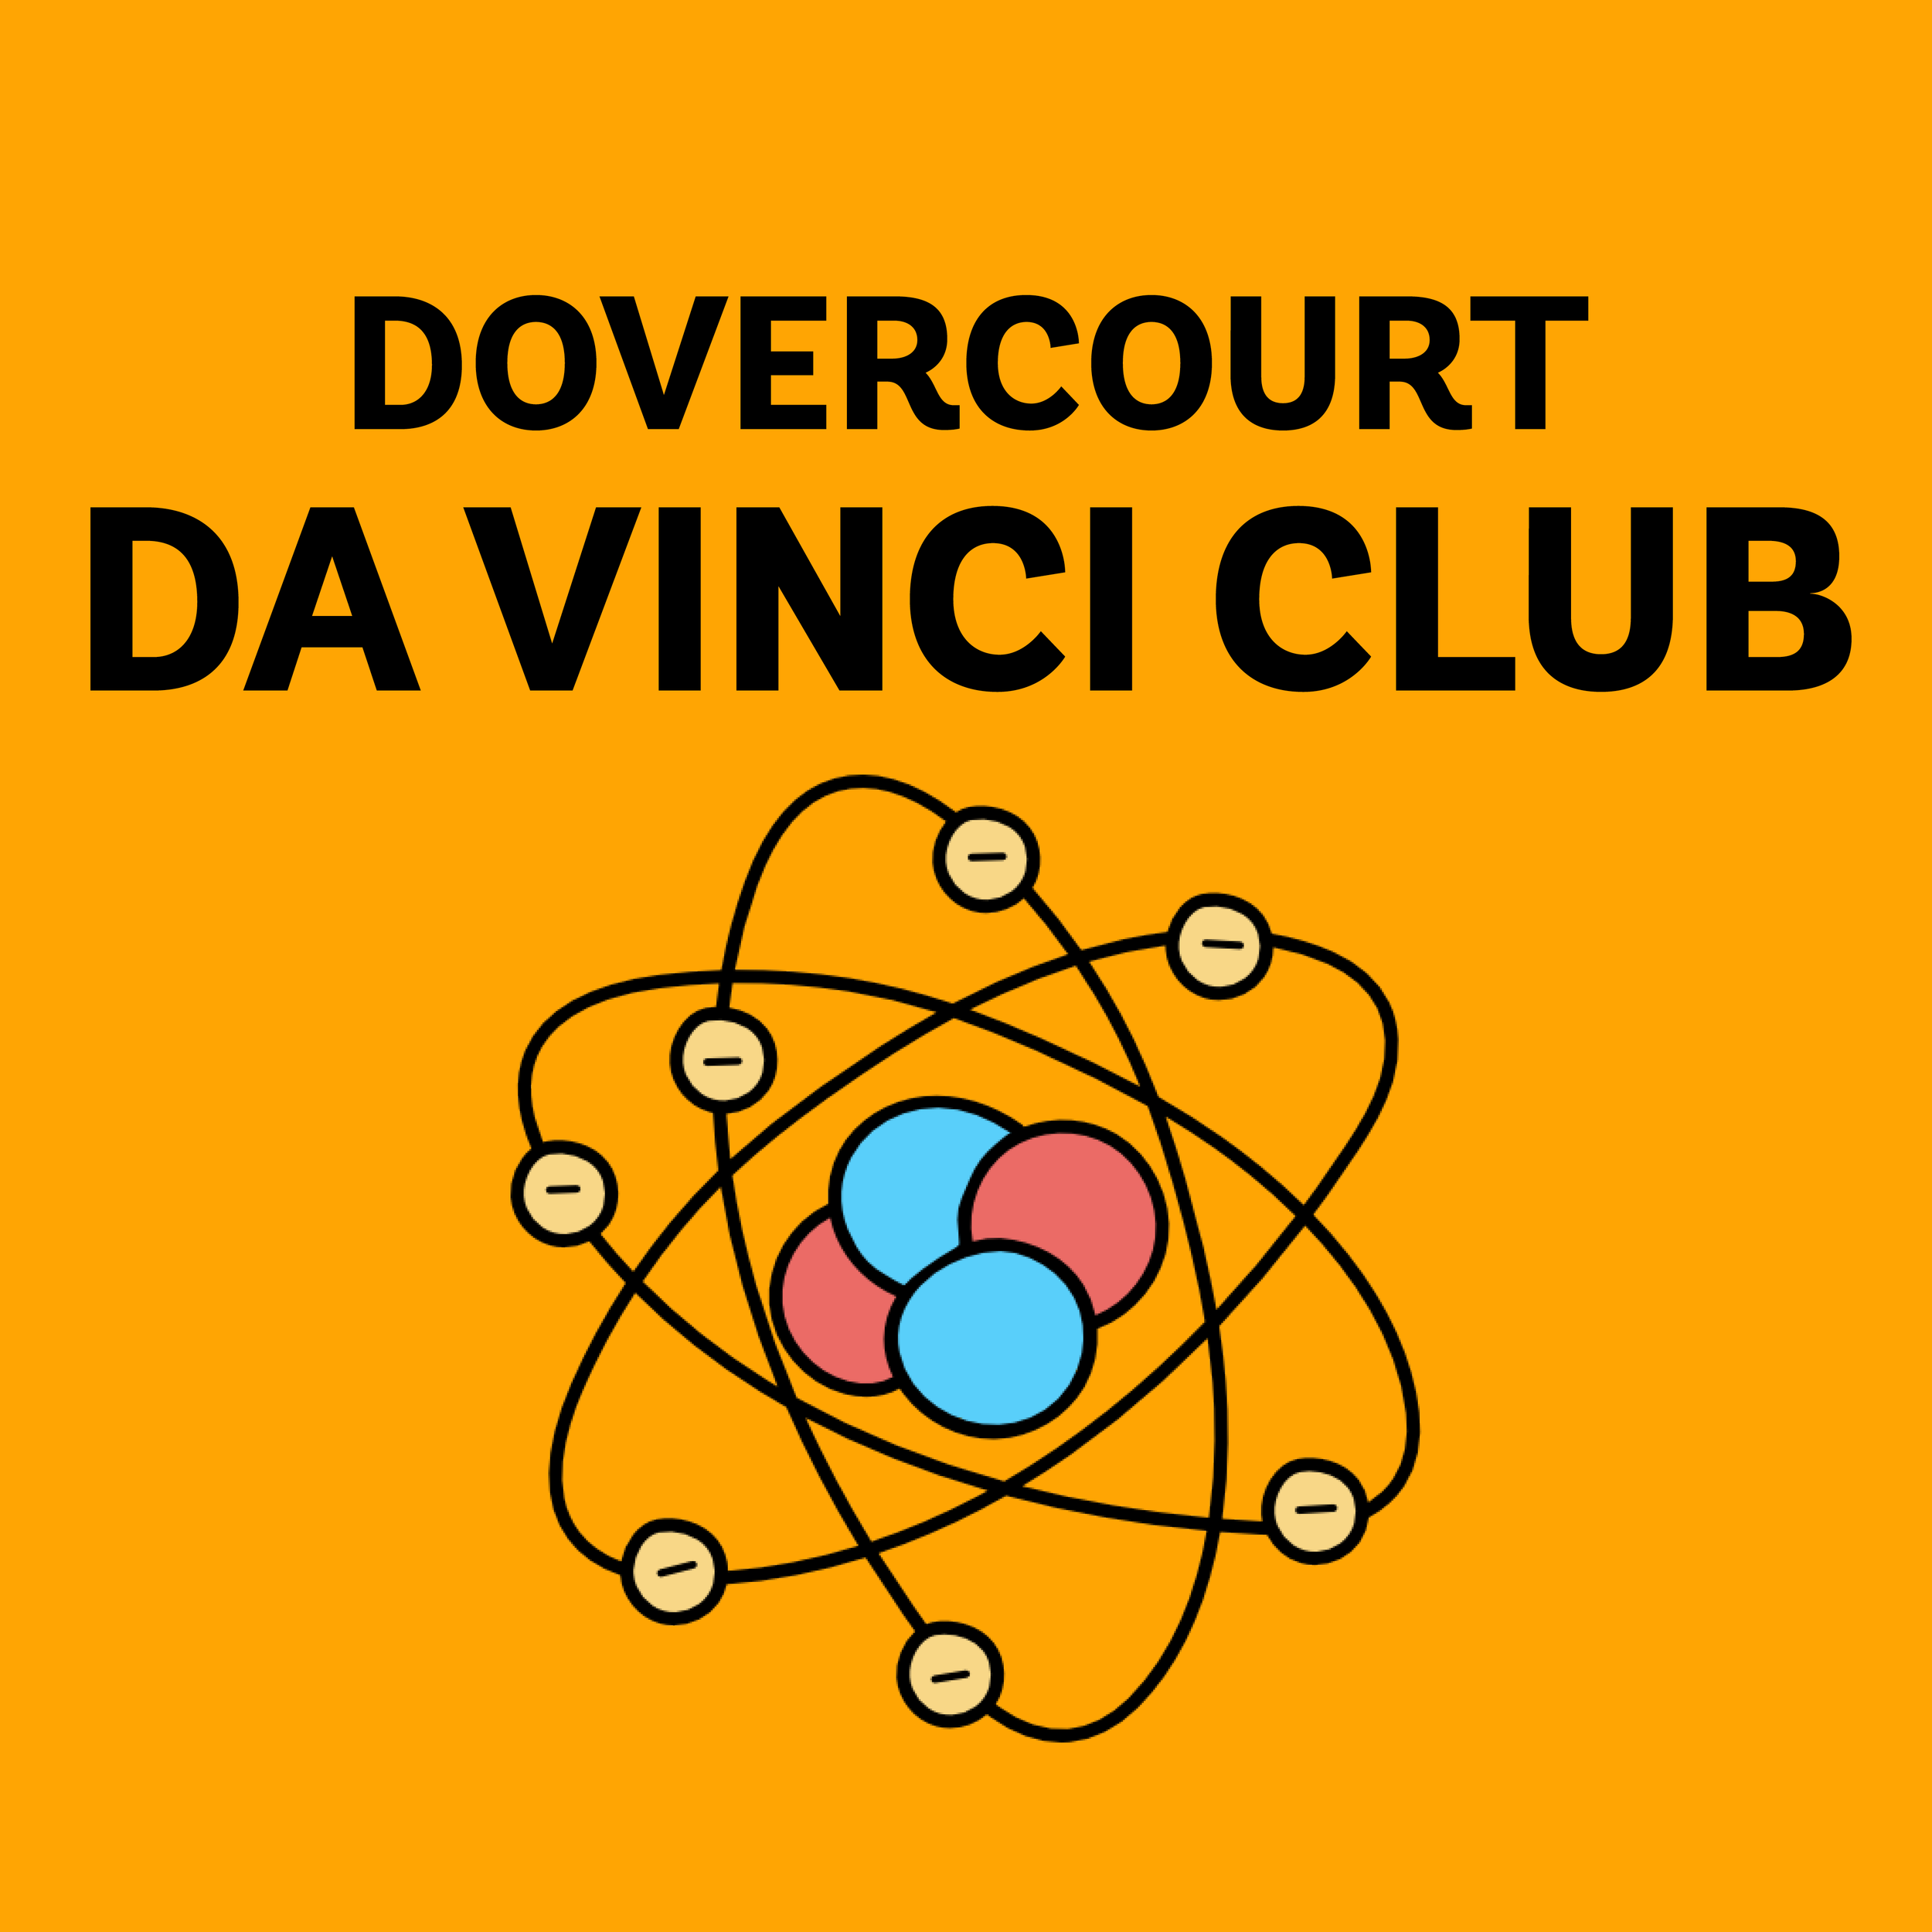 dovercourtdavinci.png